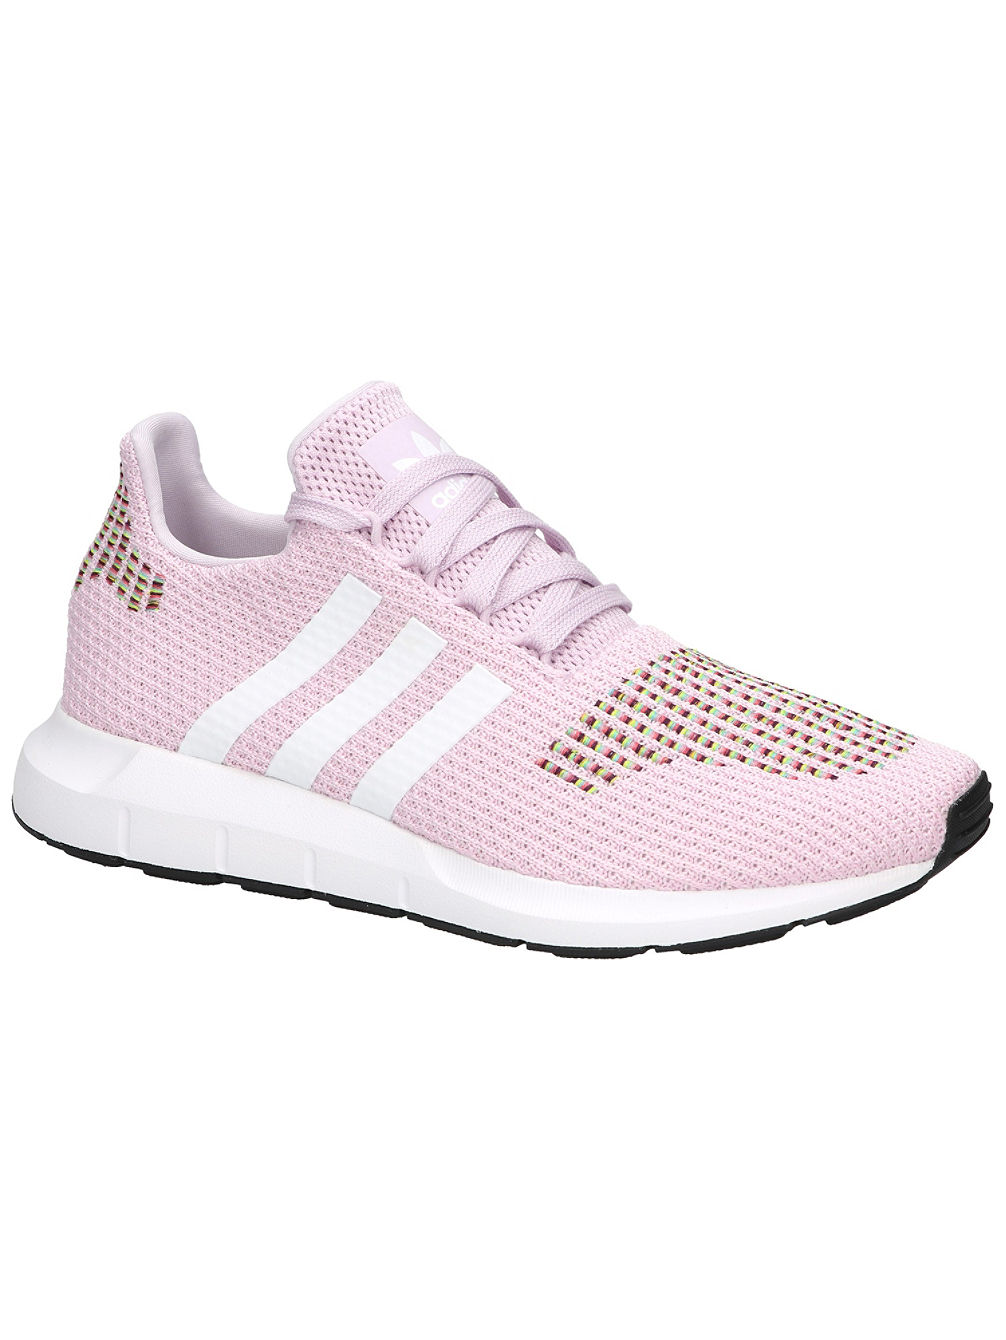 cfcde9c95916b Buy adidas Originals Swift Run Sneakers online at Blue Tomato